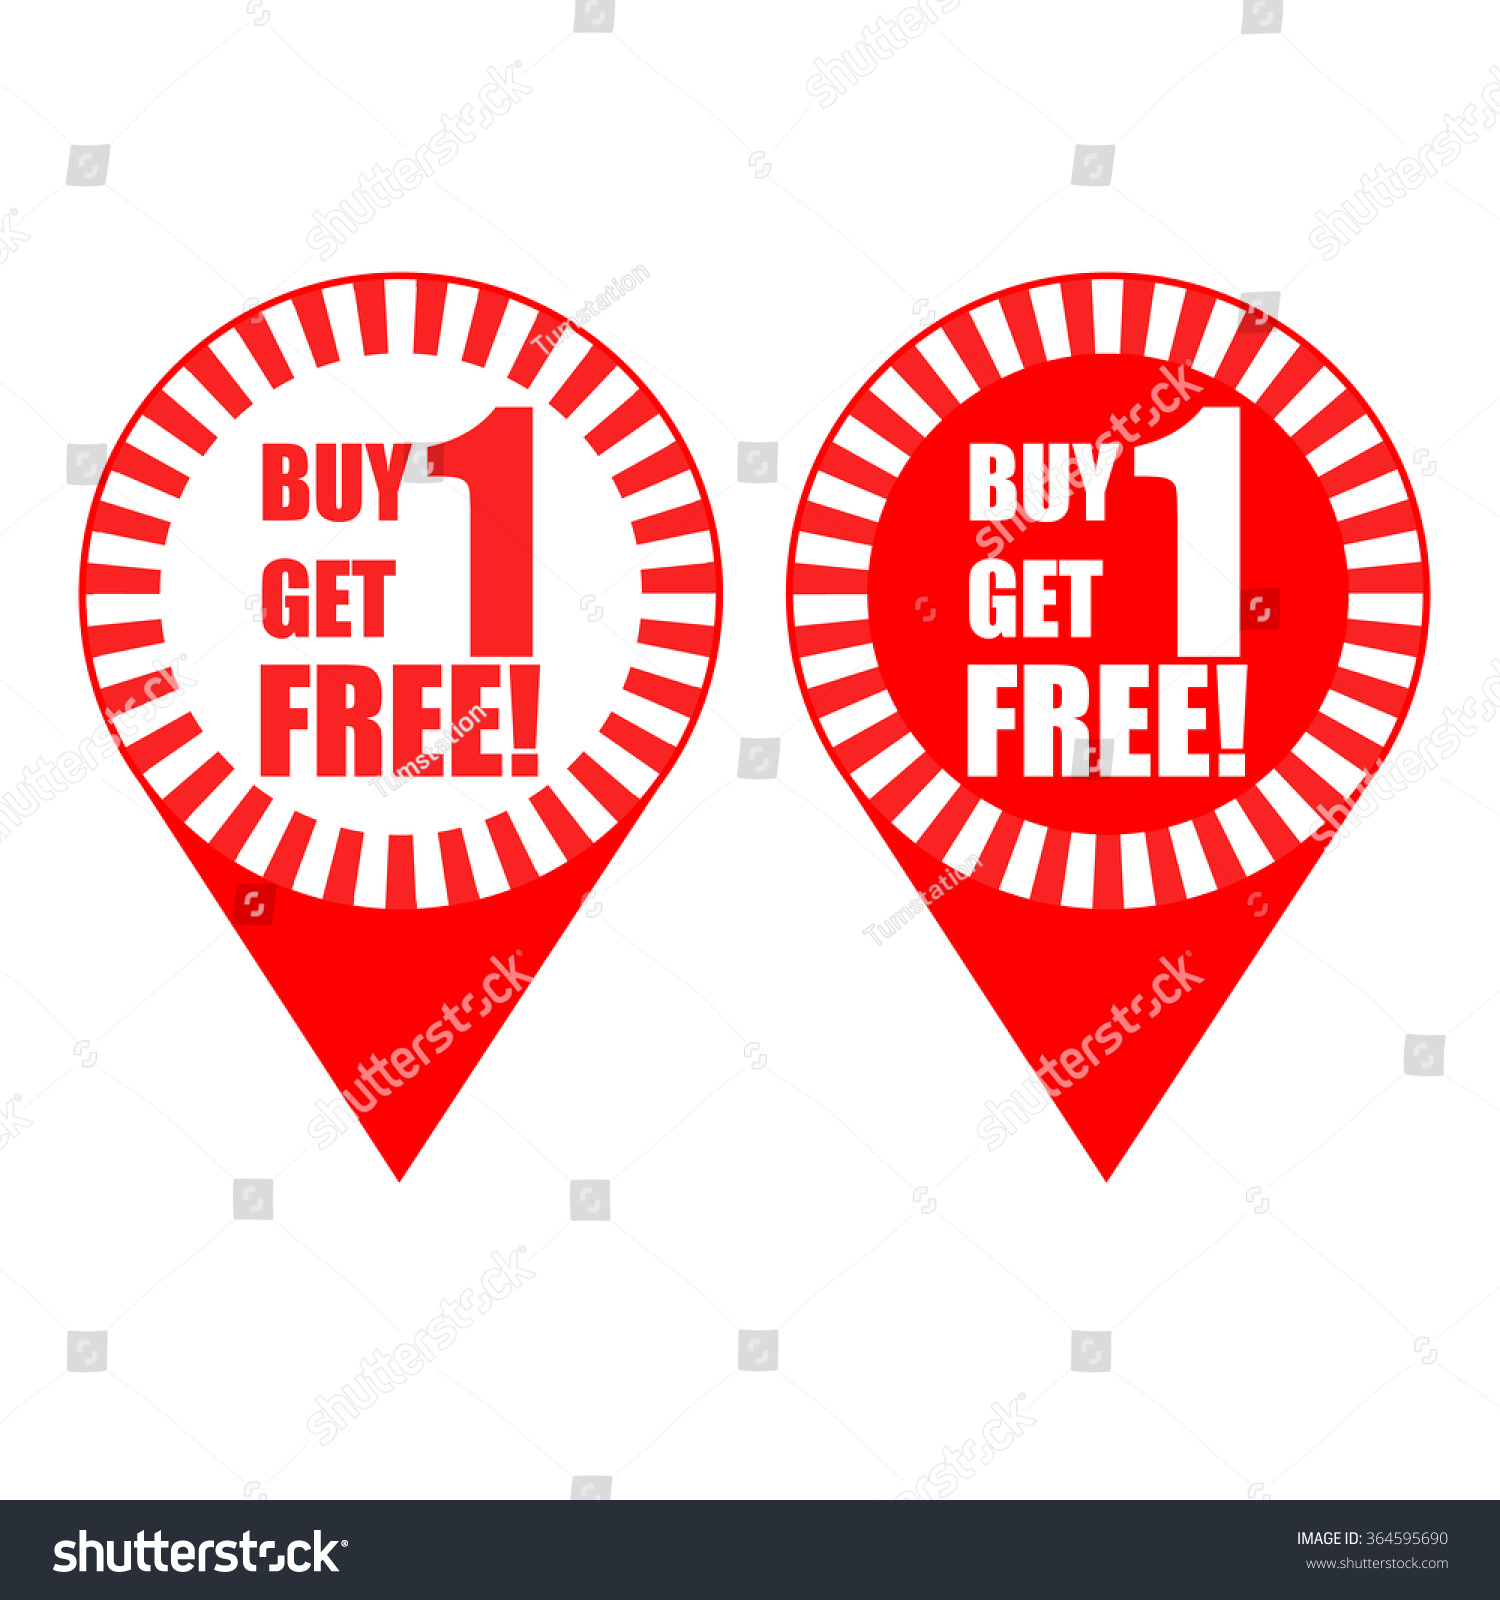 pin promotion vector buy 1 get stock vector 364595690 shutterstock pin promotion vector buy 1 get 1